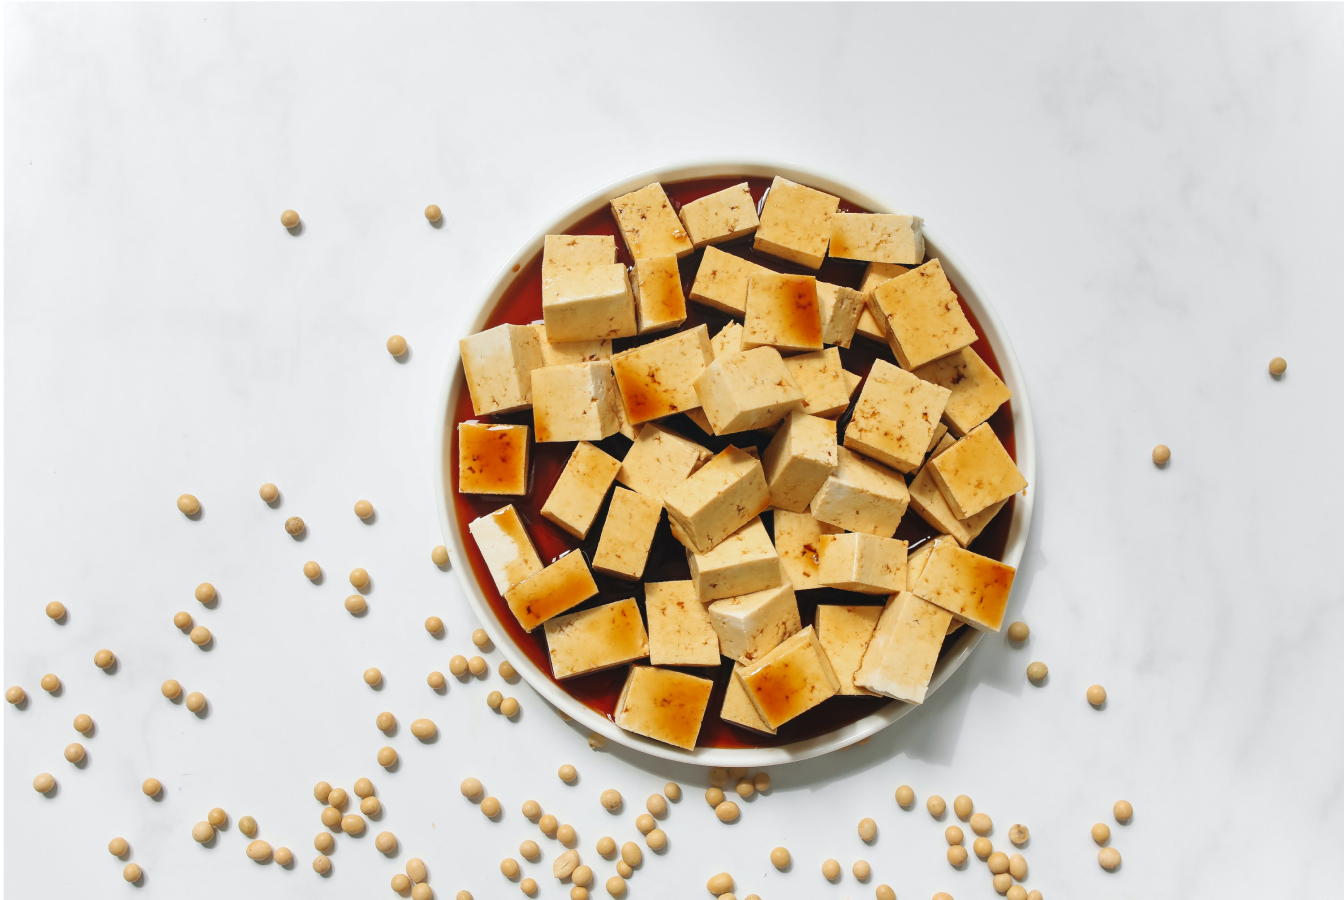 Tofu in a bowl being soaked in soy sauce for a no meat meal